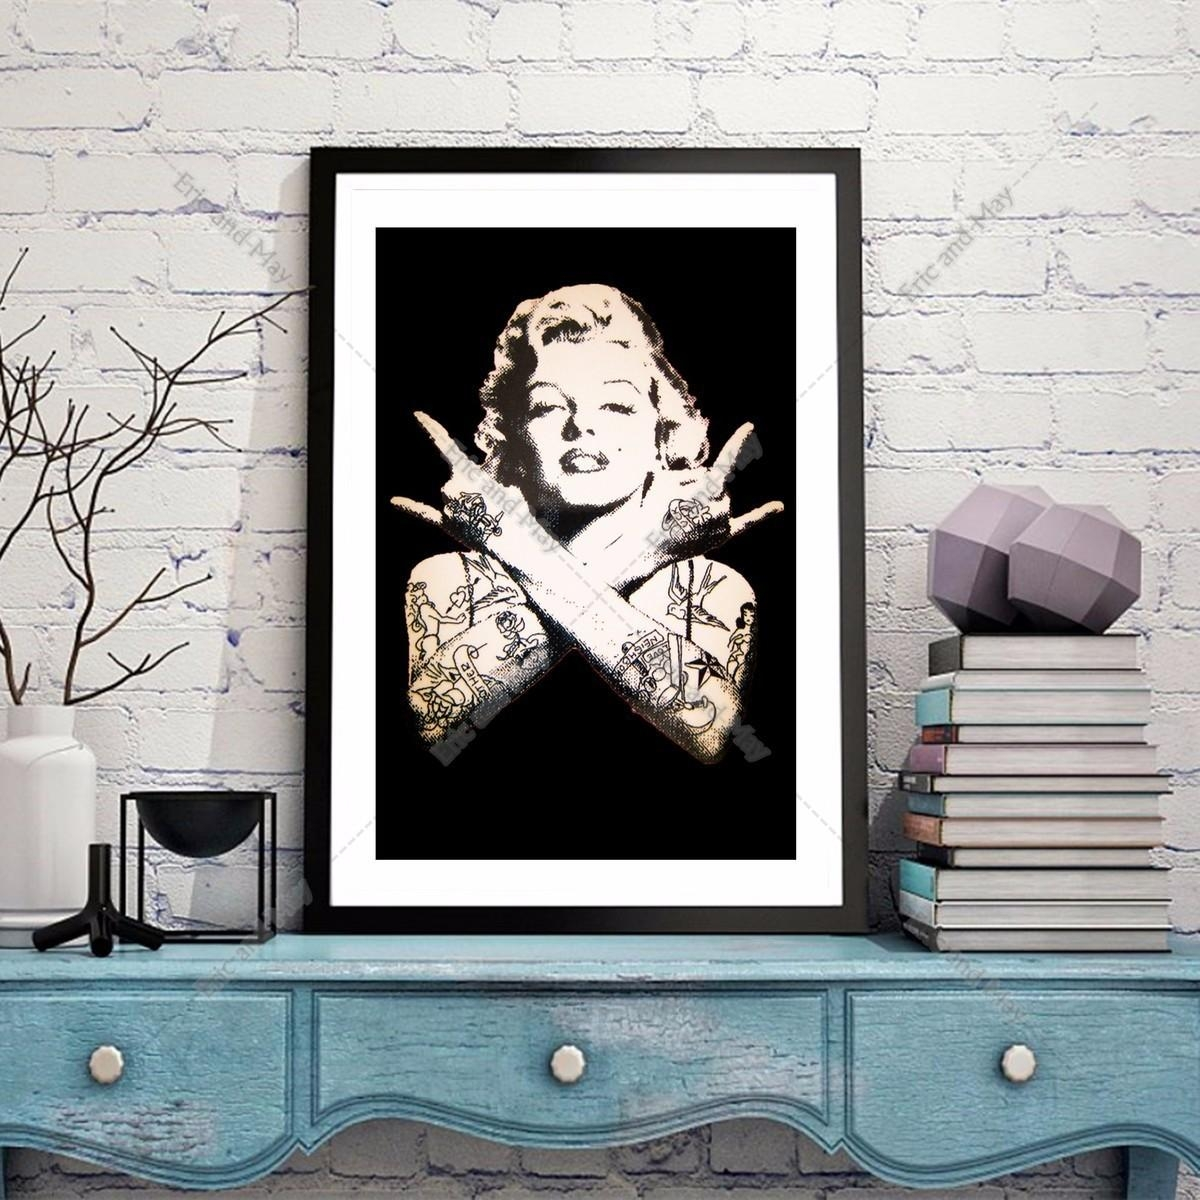 Online Get Cheap Marilyn Monroe Framed Posters Aliexpress Within Marilyn Monroe Framed Wall Art (View 16 of 20)